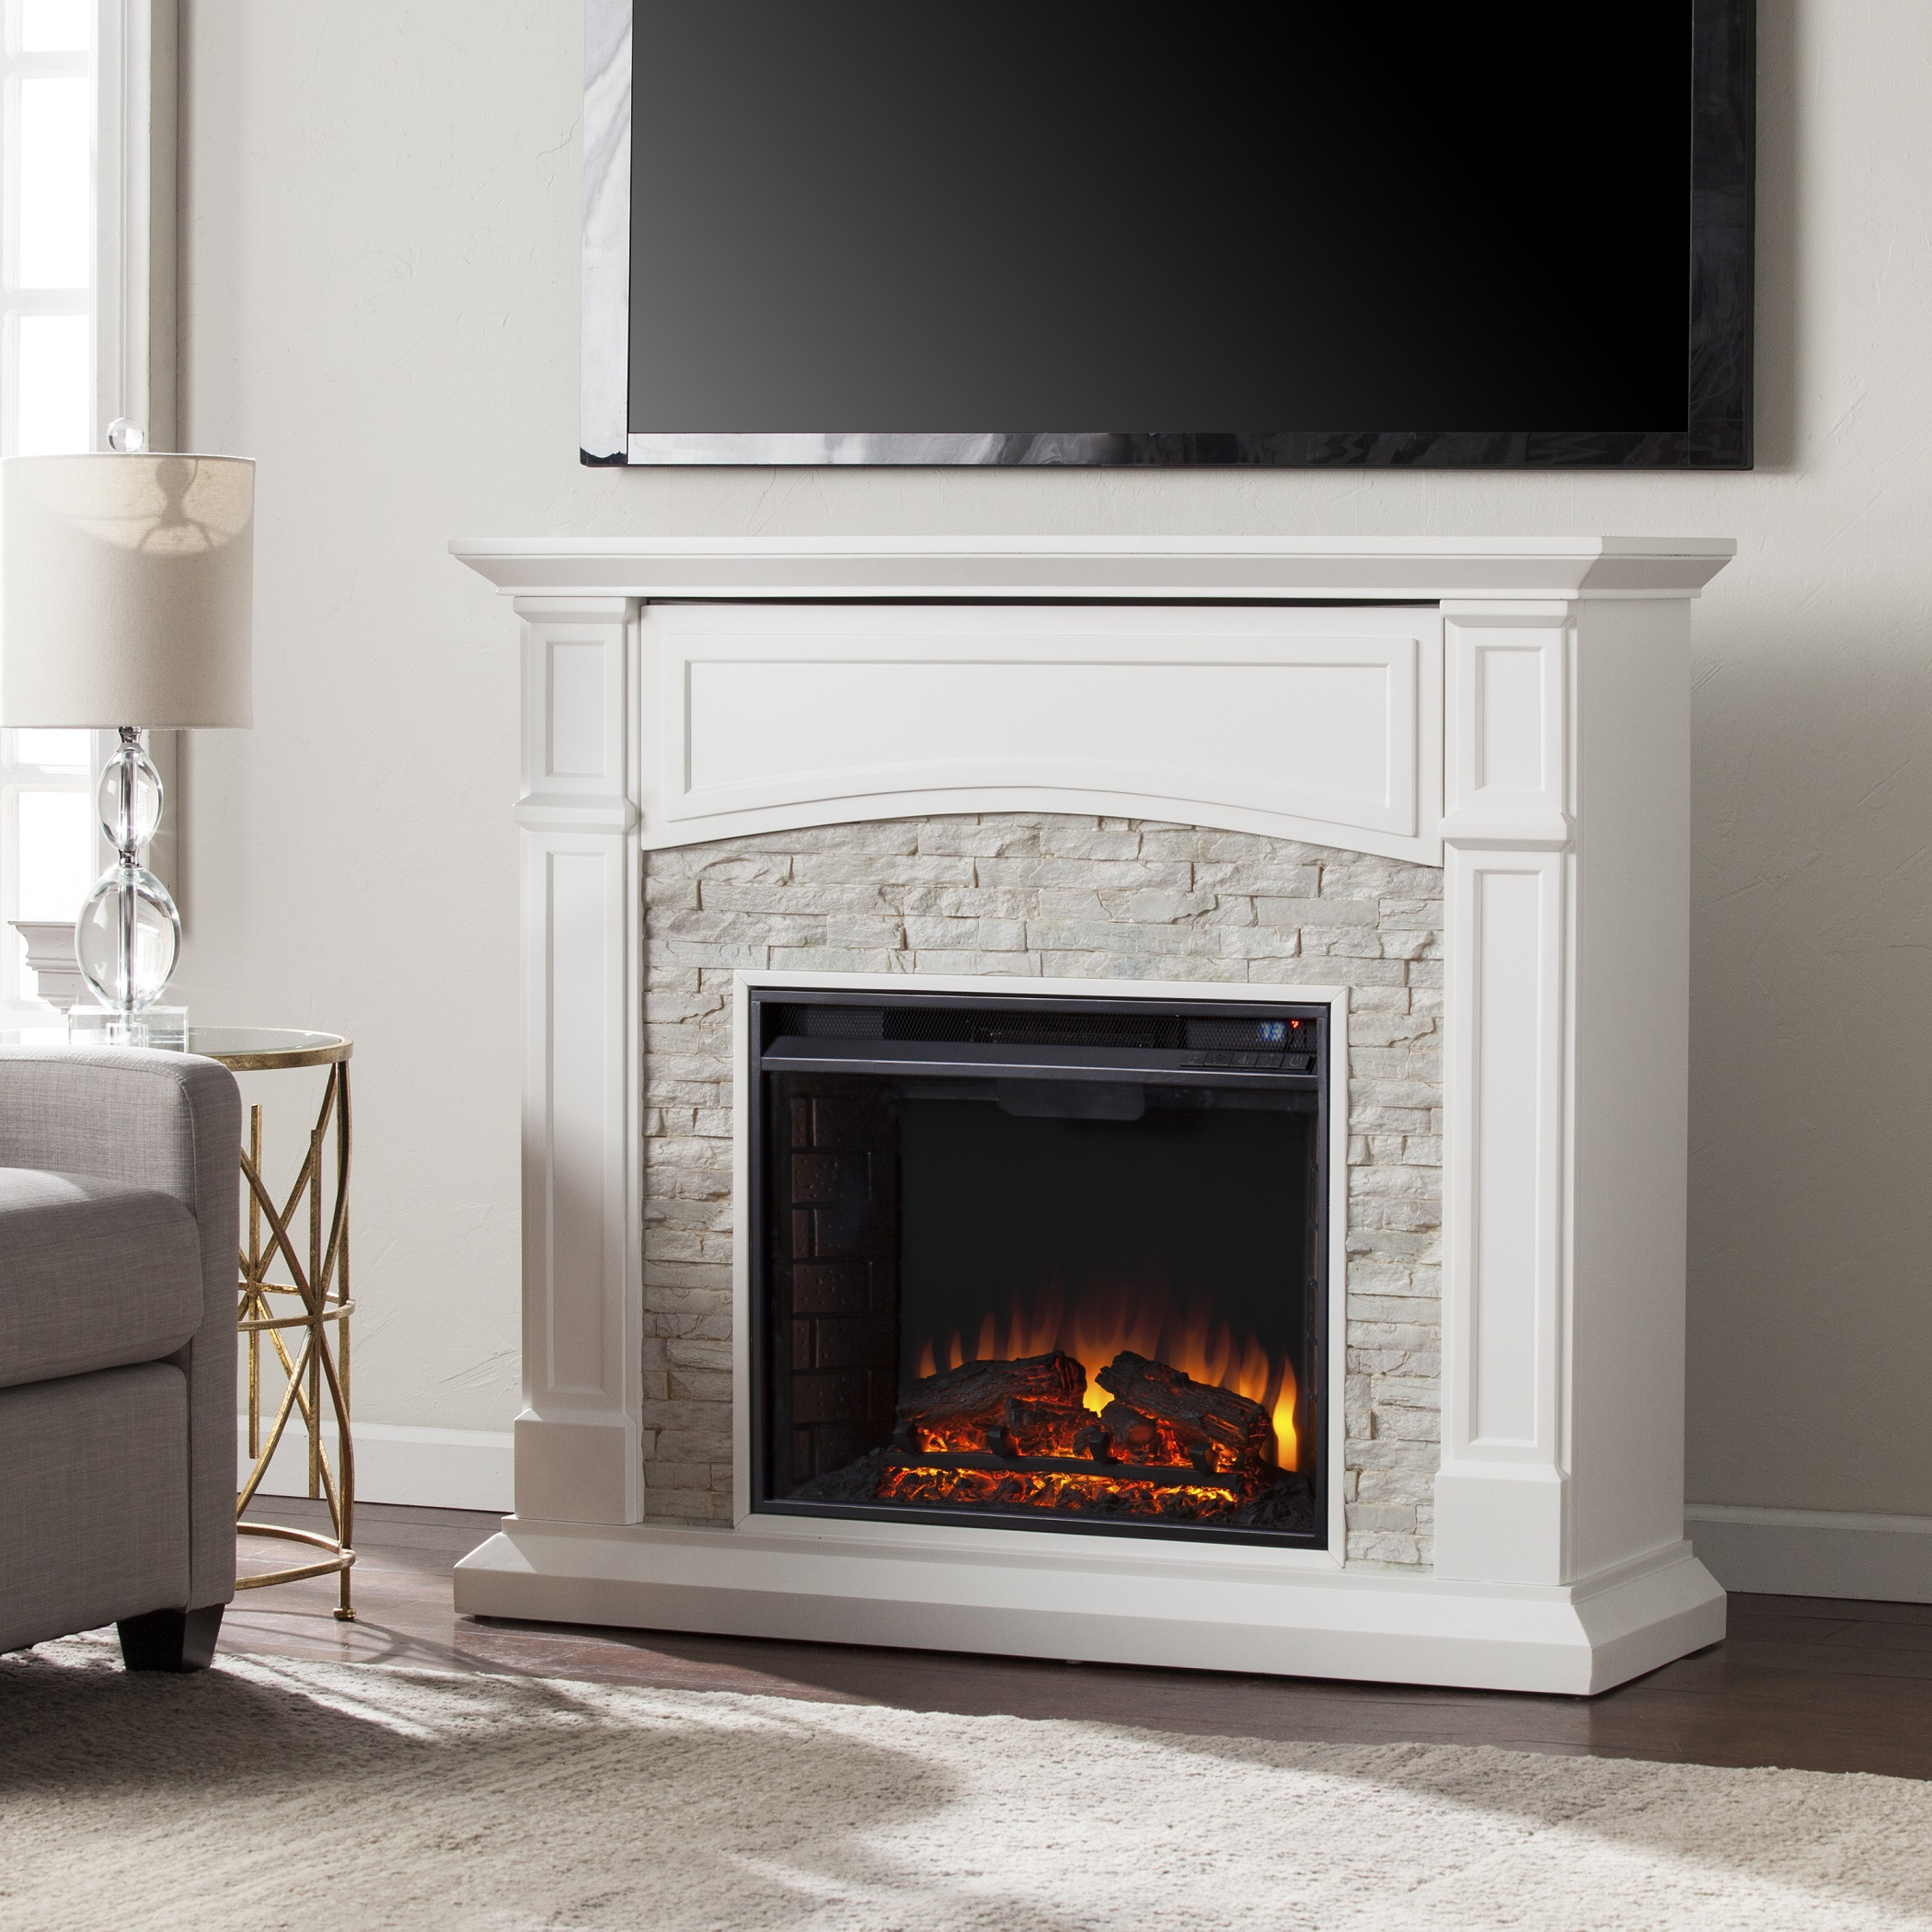 Freshen up your look with this ambience inspiring media fireplace. Crisp white hue and linear composition define farmhouse inspired transitional chic.